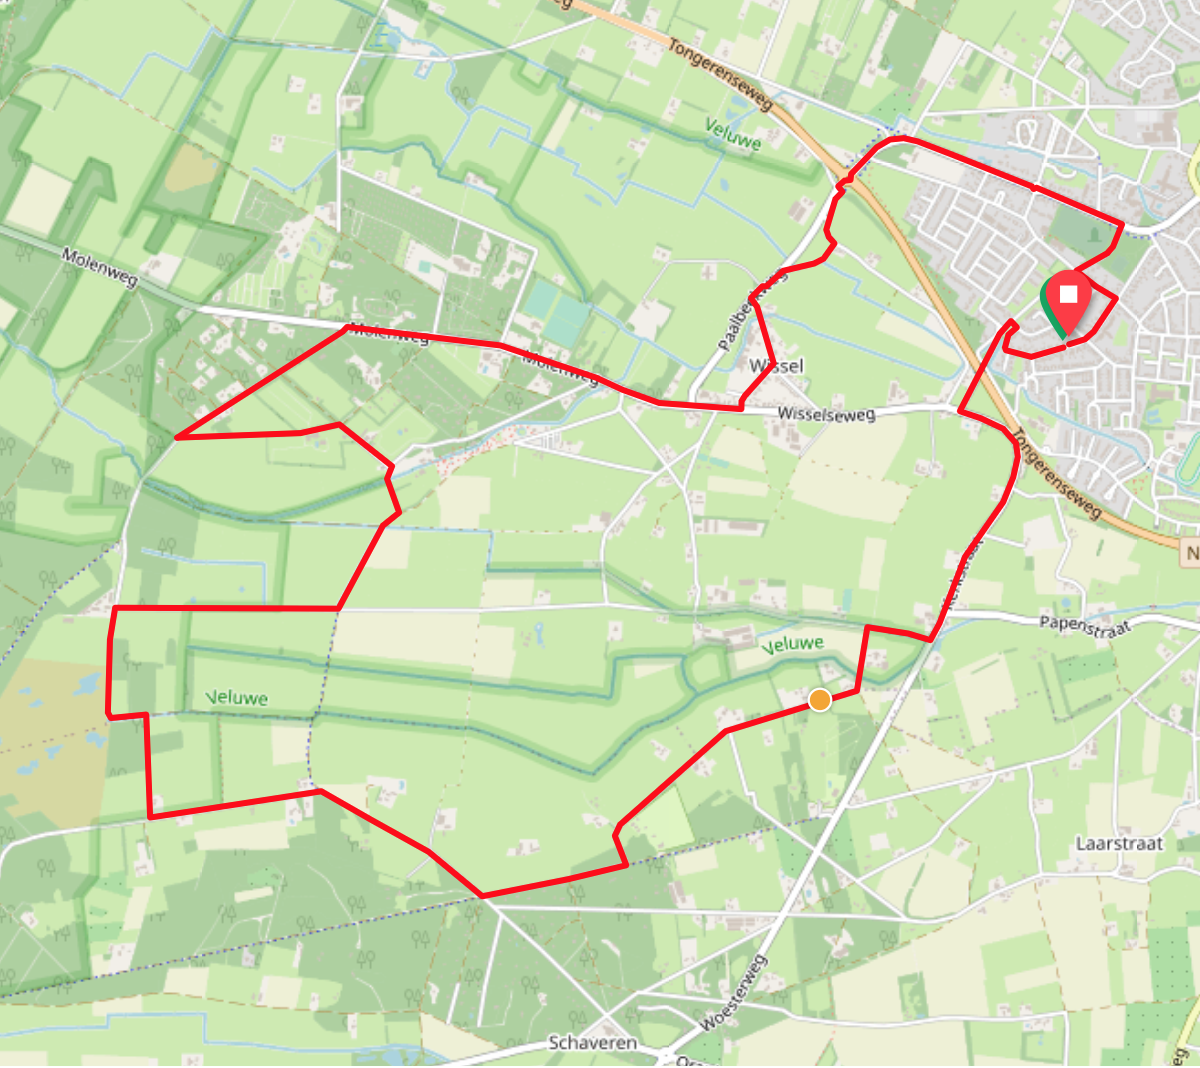 Wisselse veen route